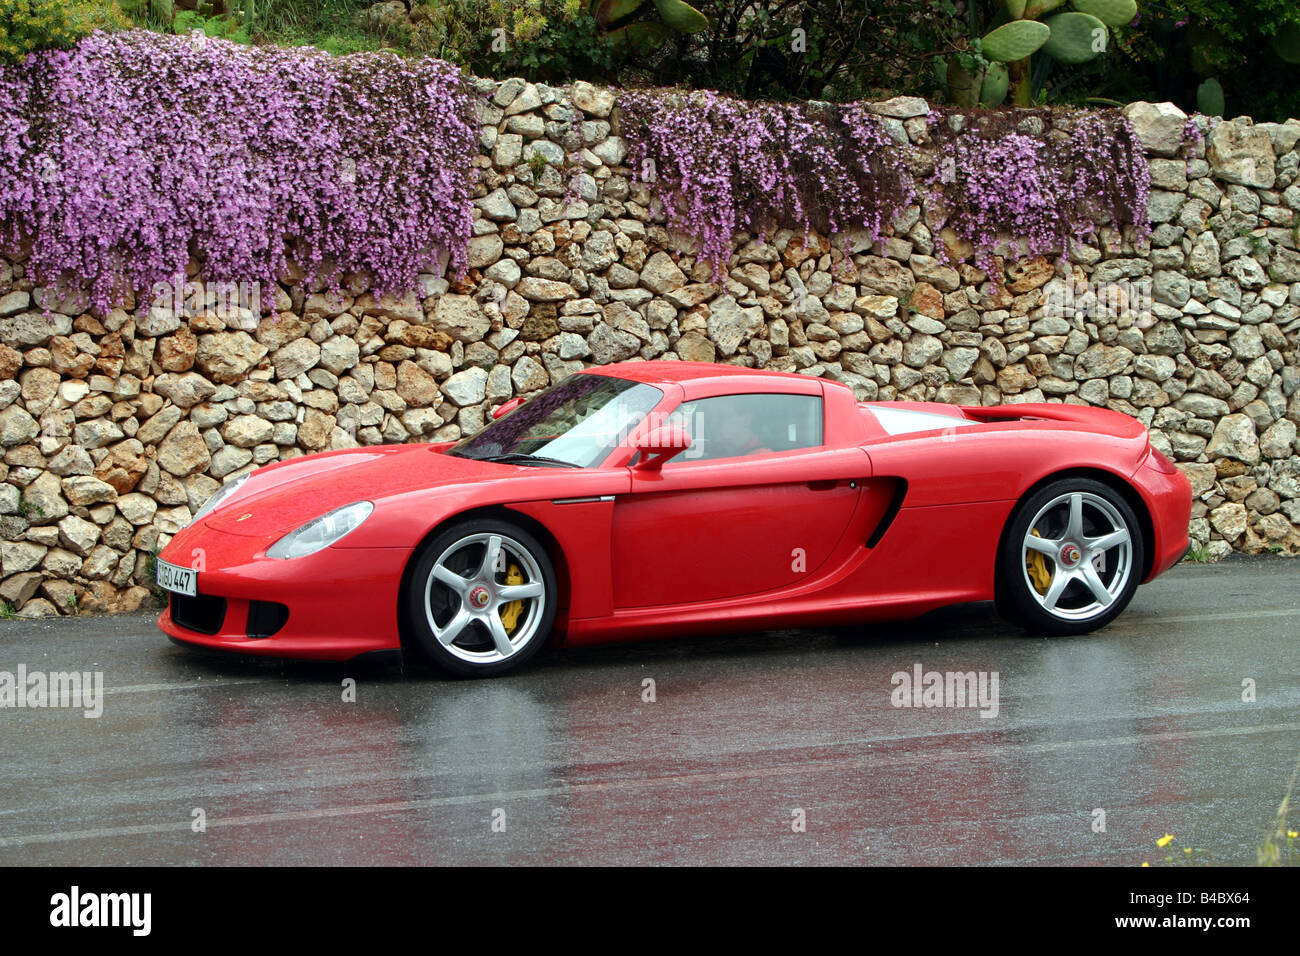 Car Porsche Carrera Gt Roadster Model Year 2003 Coupe Coupe Stock Photo Alamy